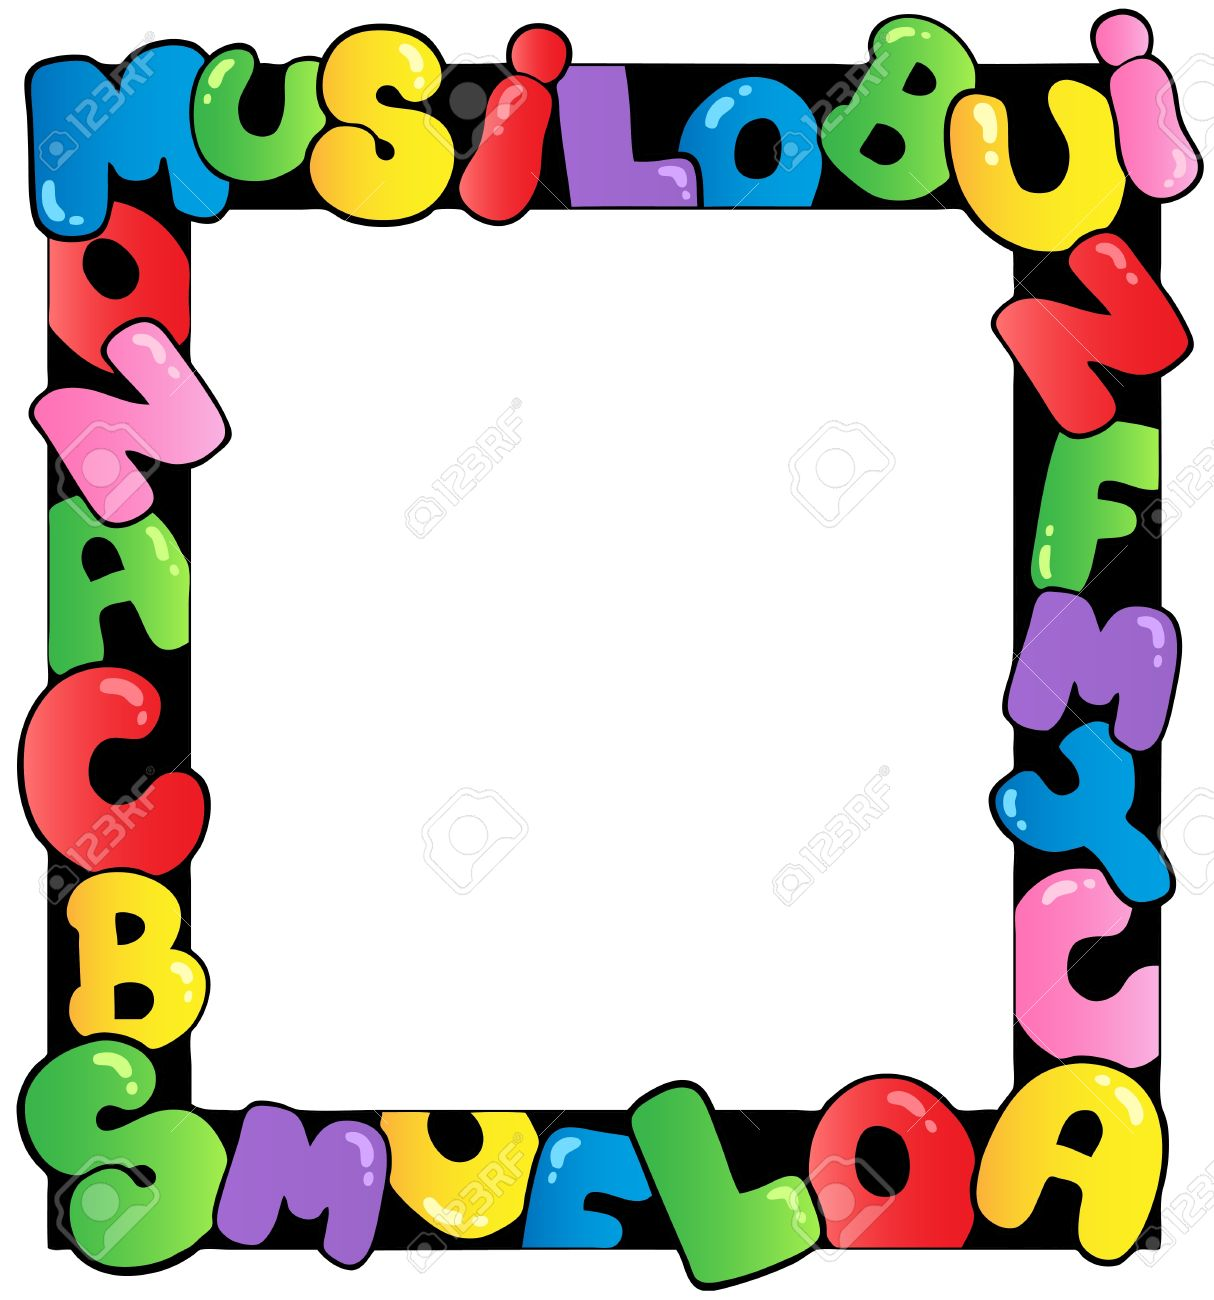 Frame With Cartoon Letters Royalty Free Cliparts, Vectors, And Stock ...